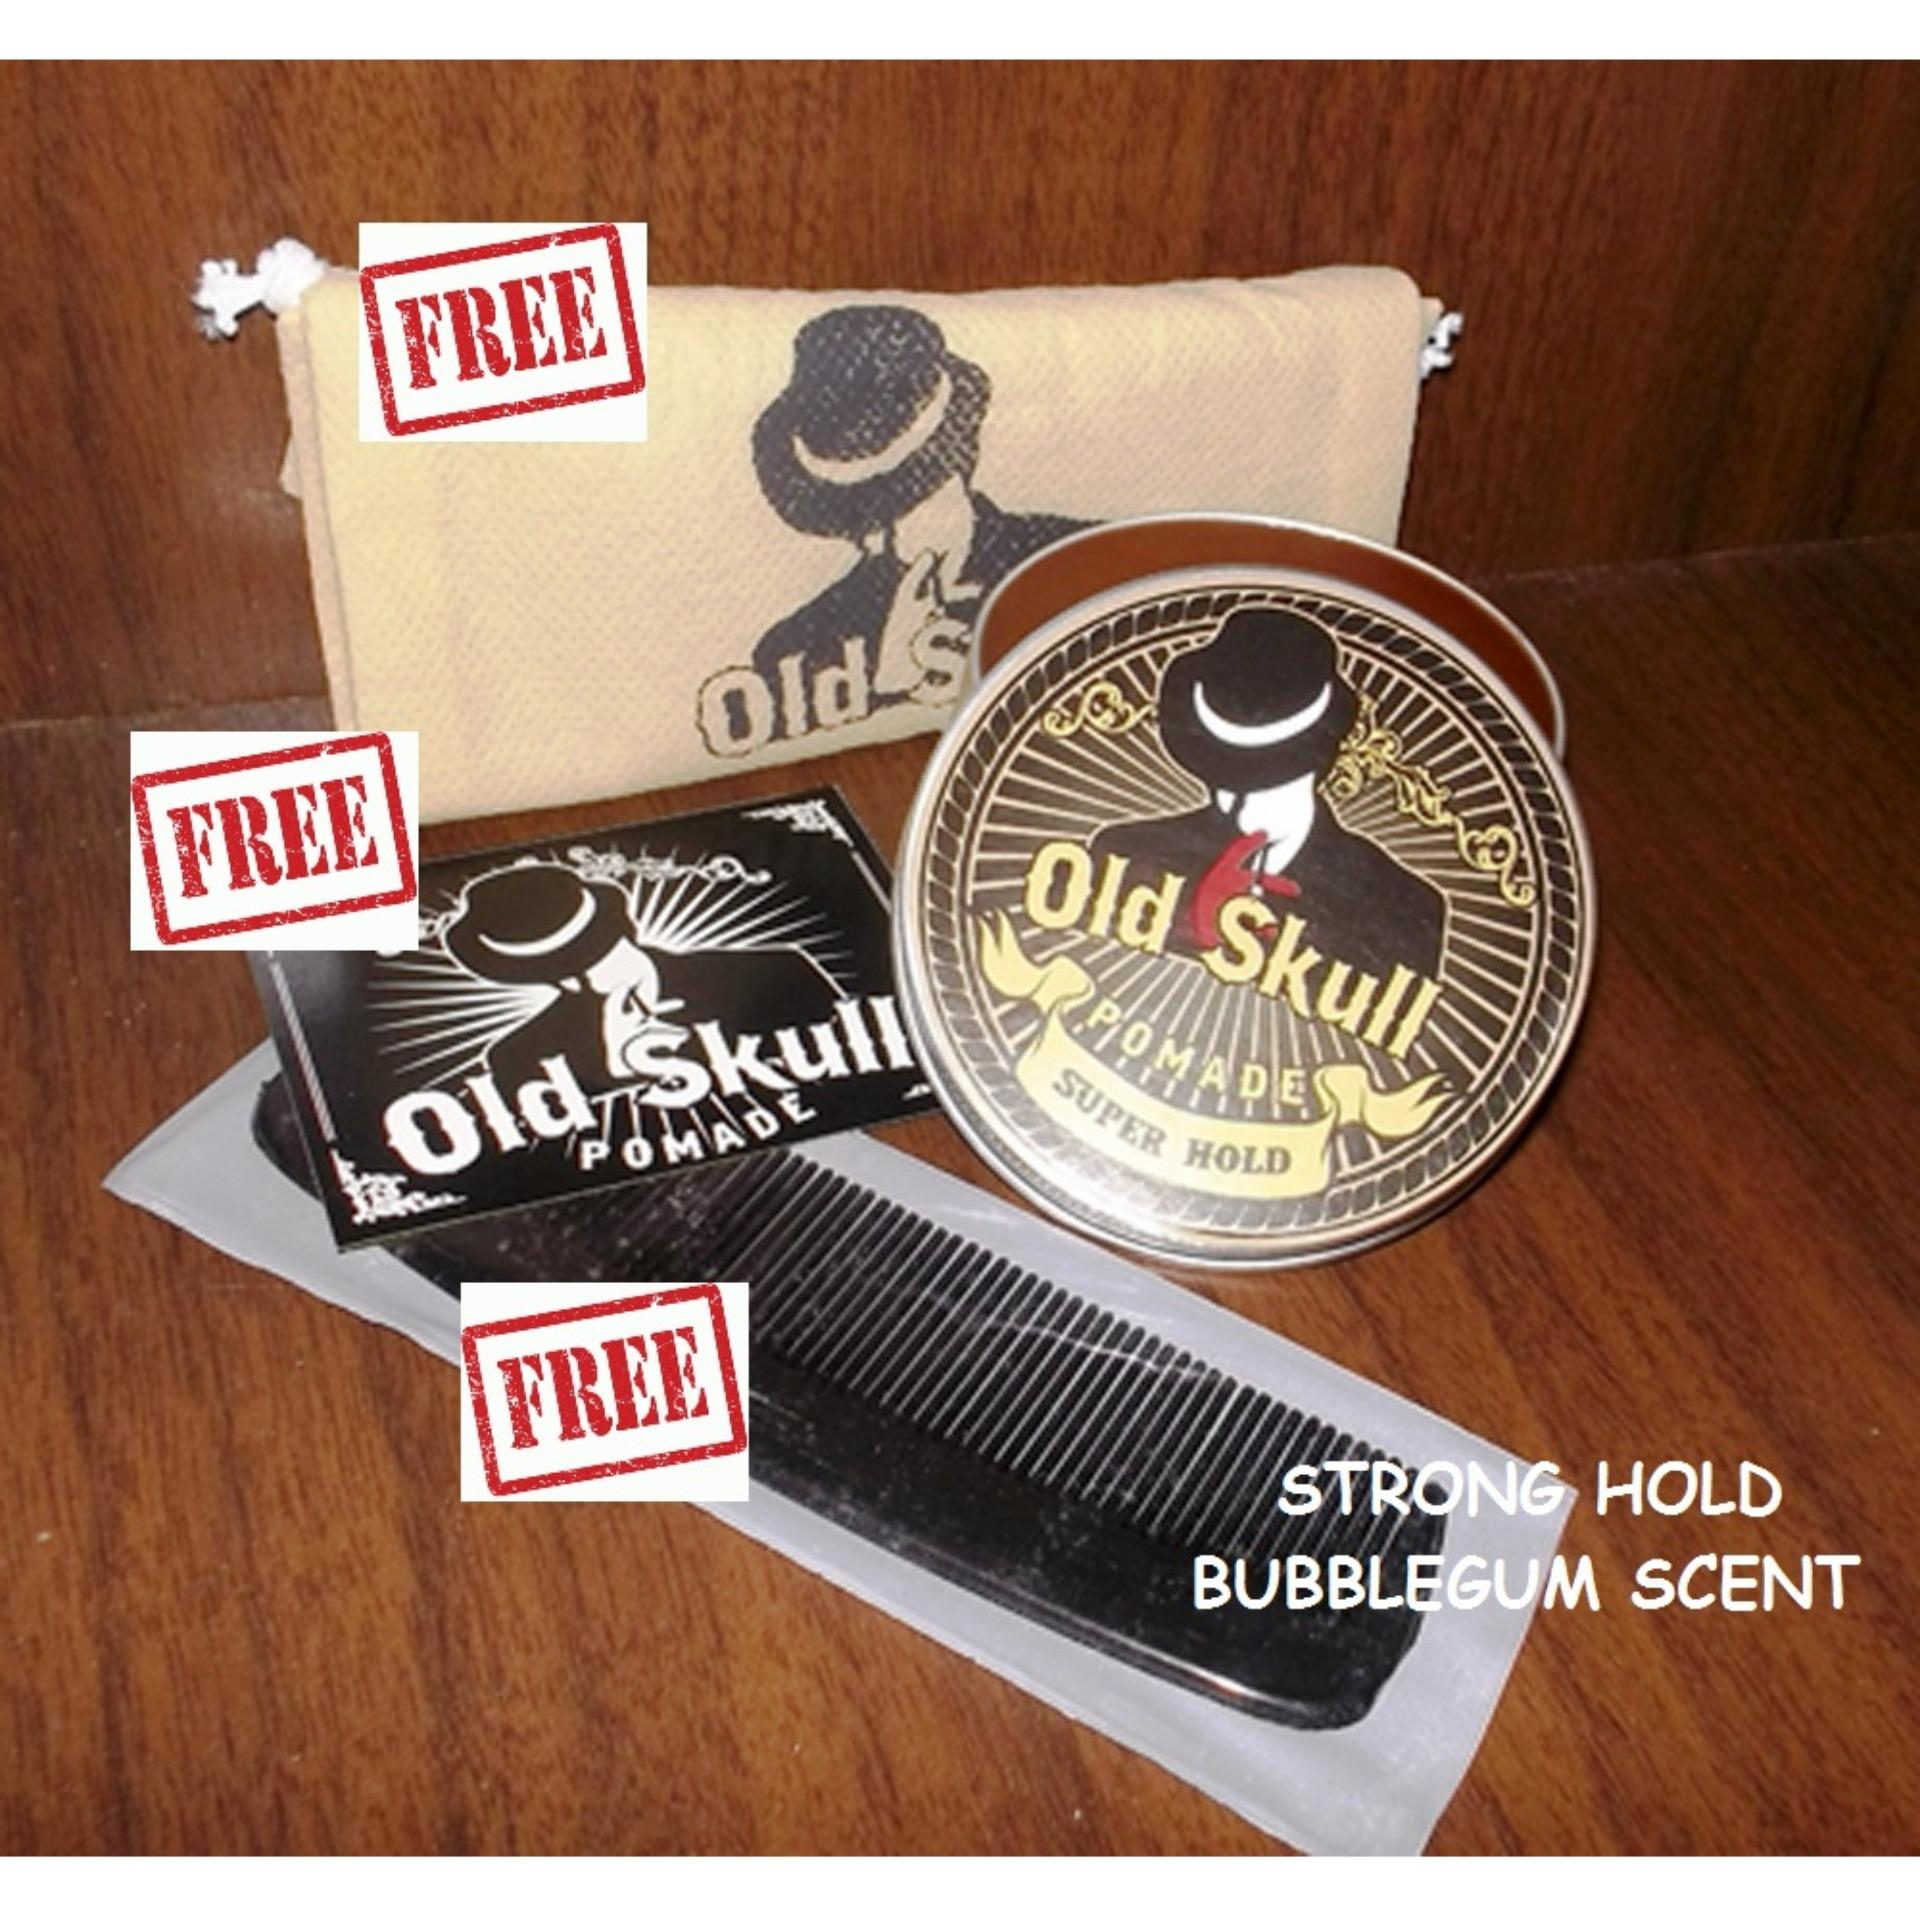 Pomade Oldskull Strong Hold Bubble Gum + Free Pouch + Free Bubble Wrap + Free Sisir